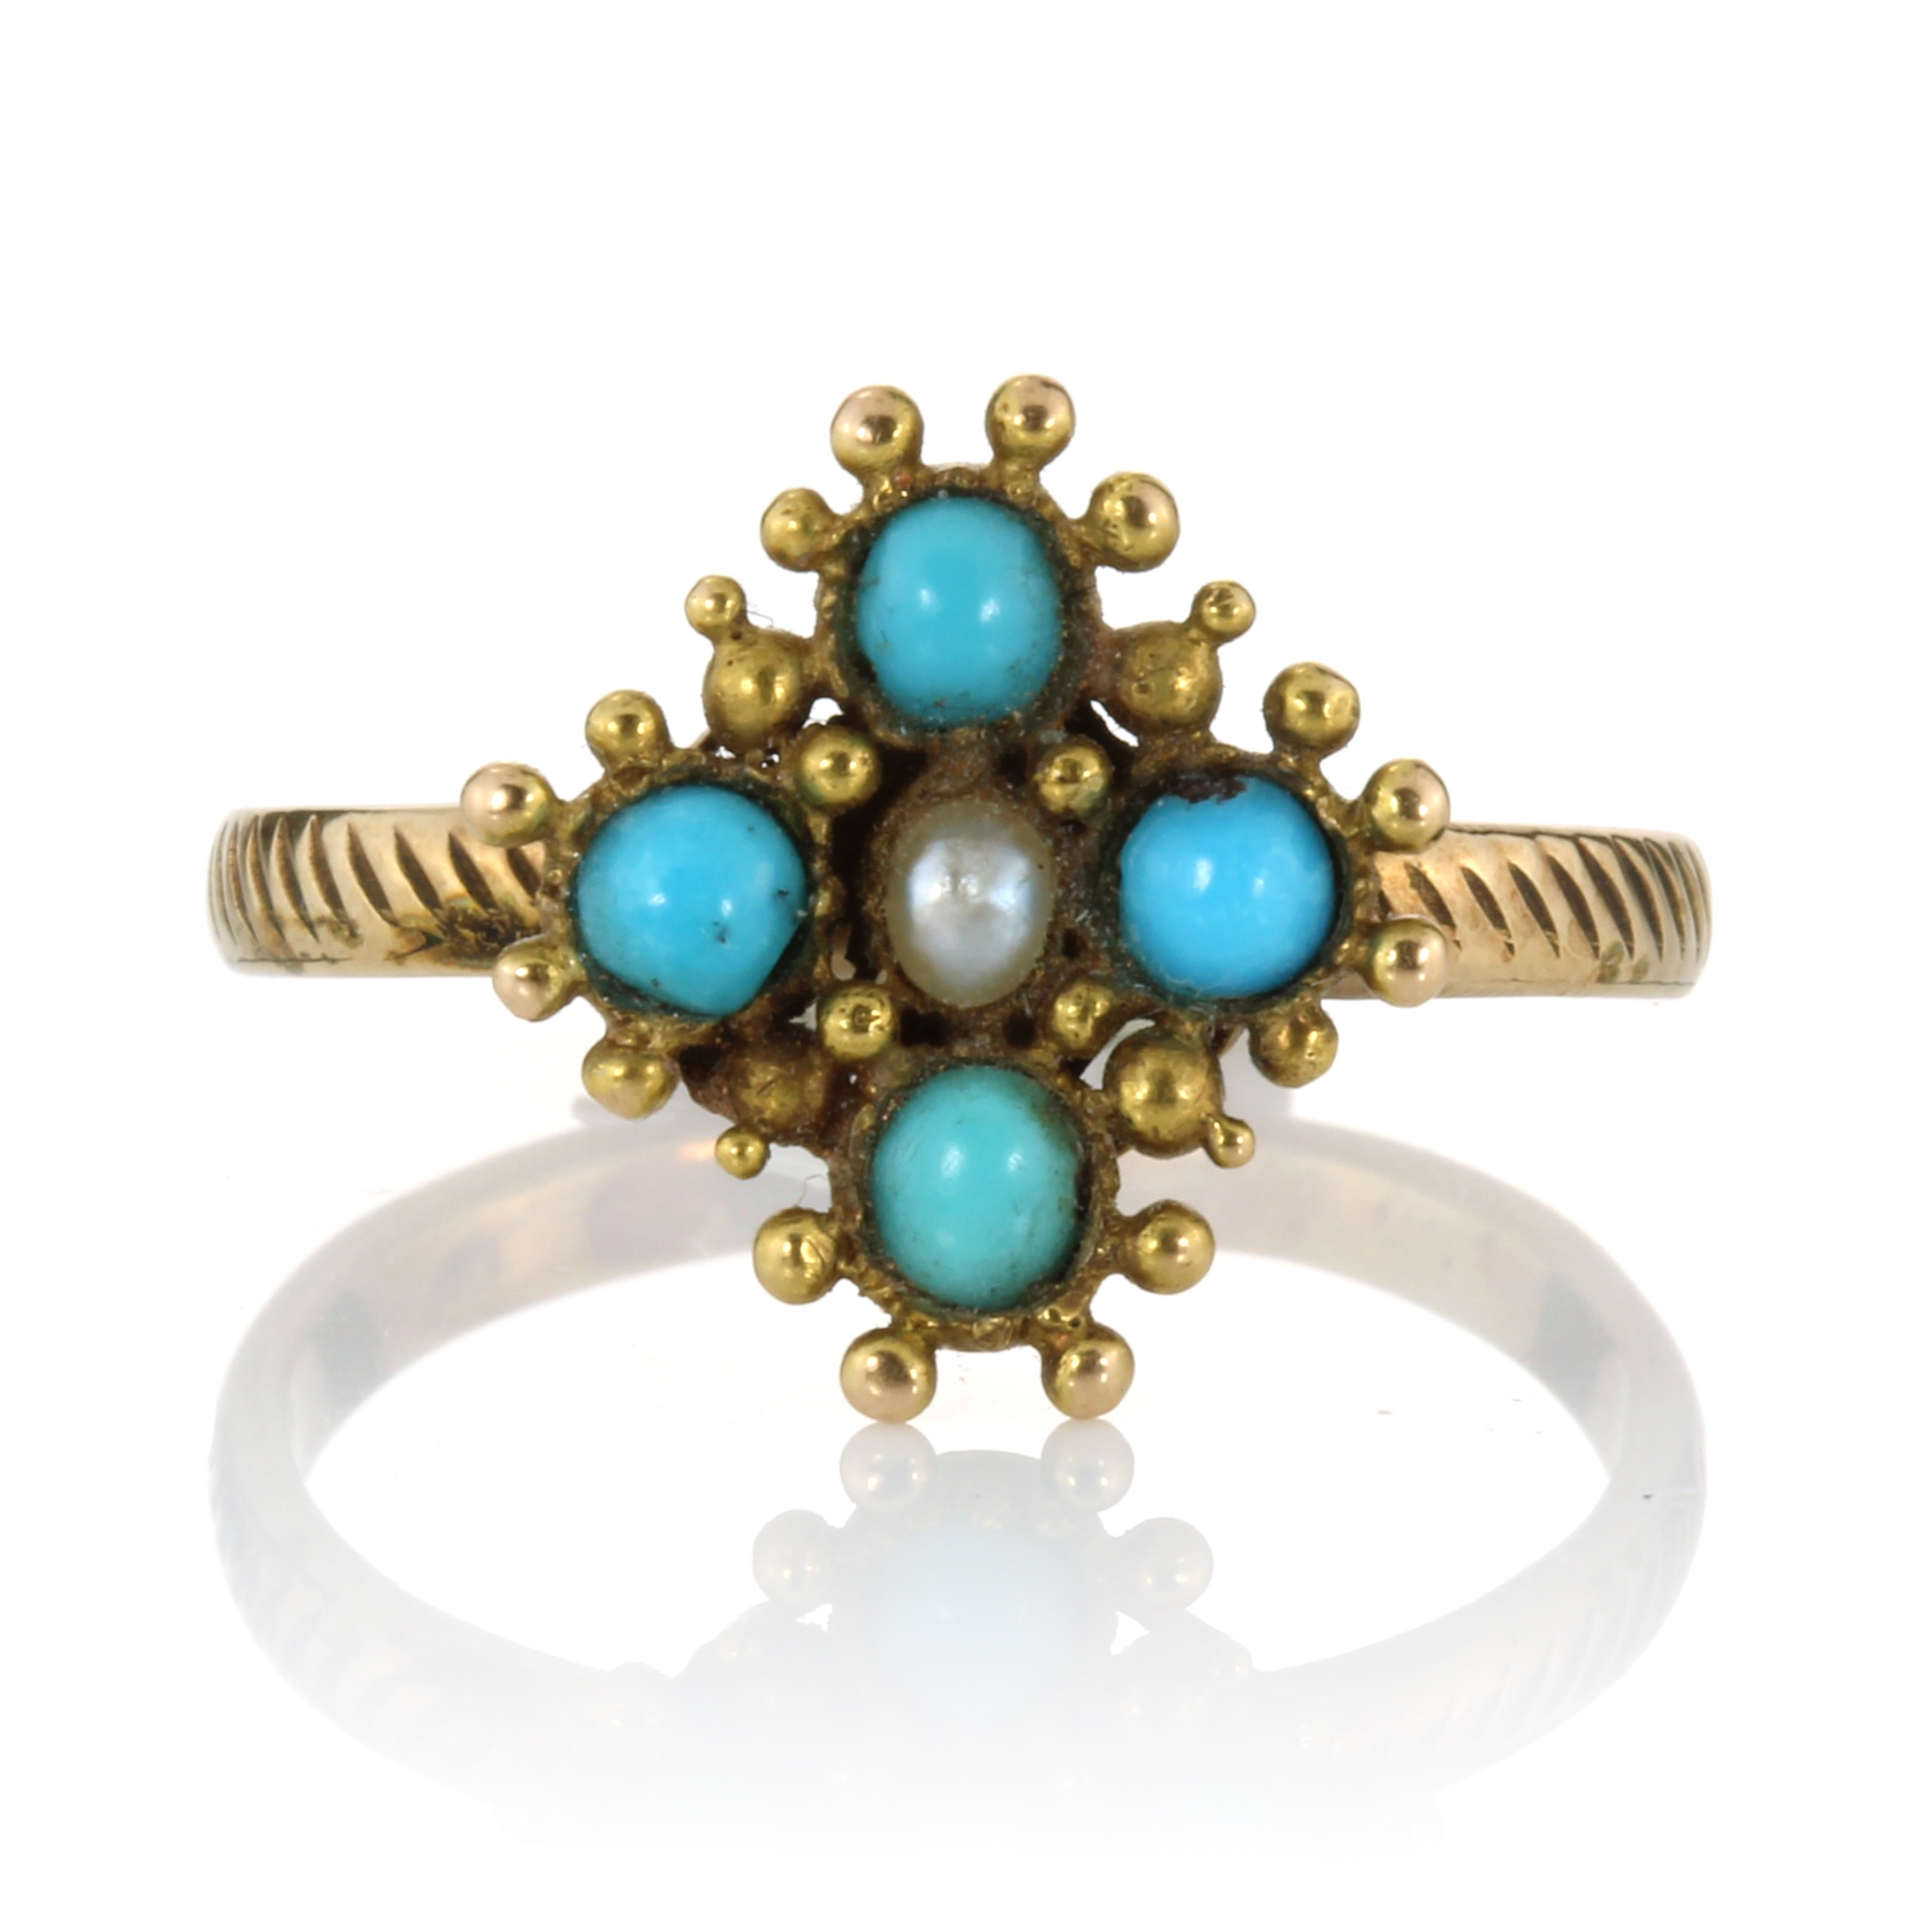 Los 17 - AN ANTIQUE TURQUOISE AND PEARL DRESS RING set with a central pearl surrounded by four turquoise